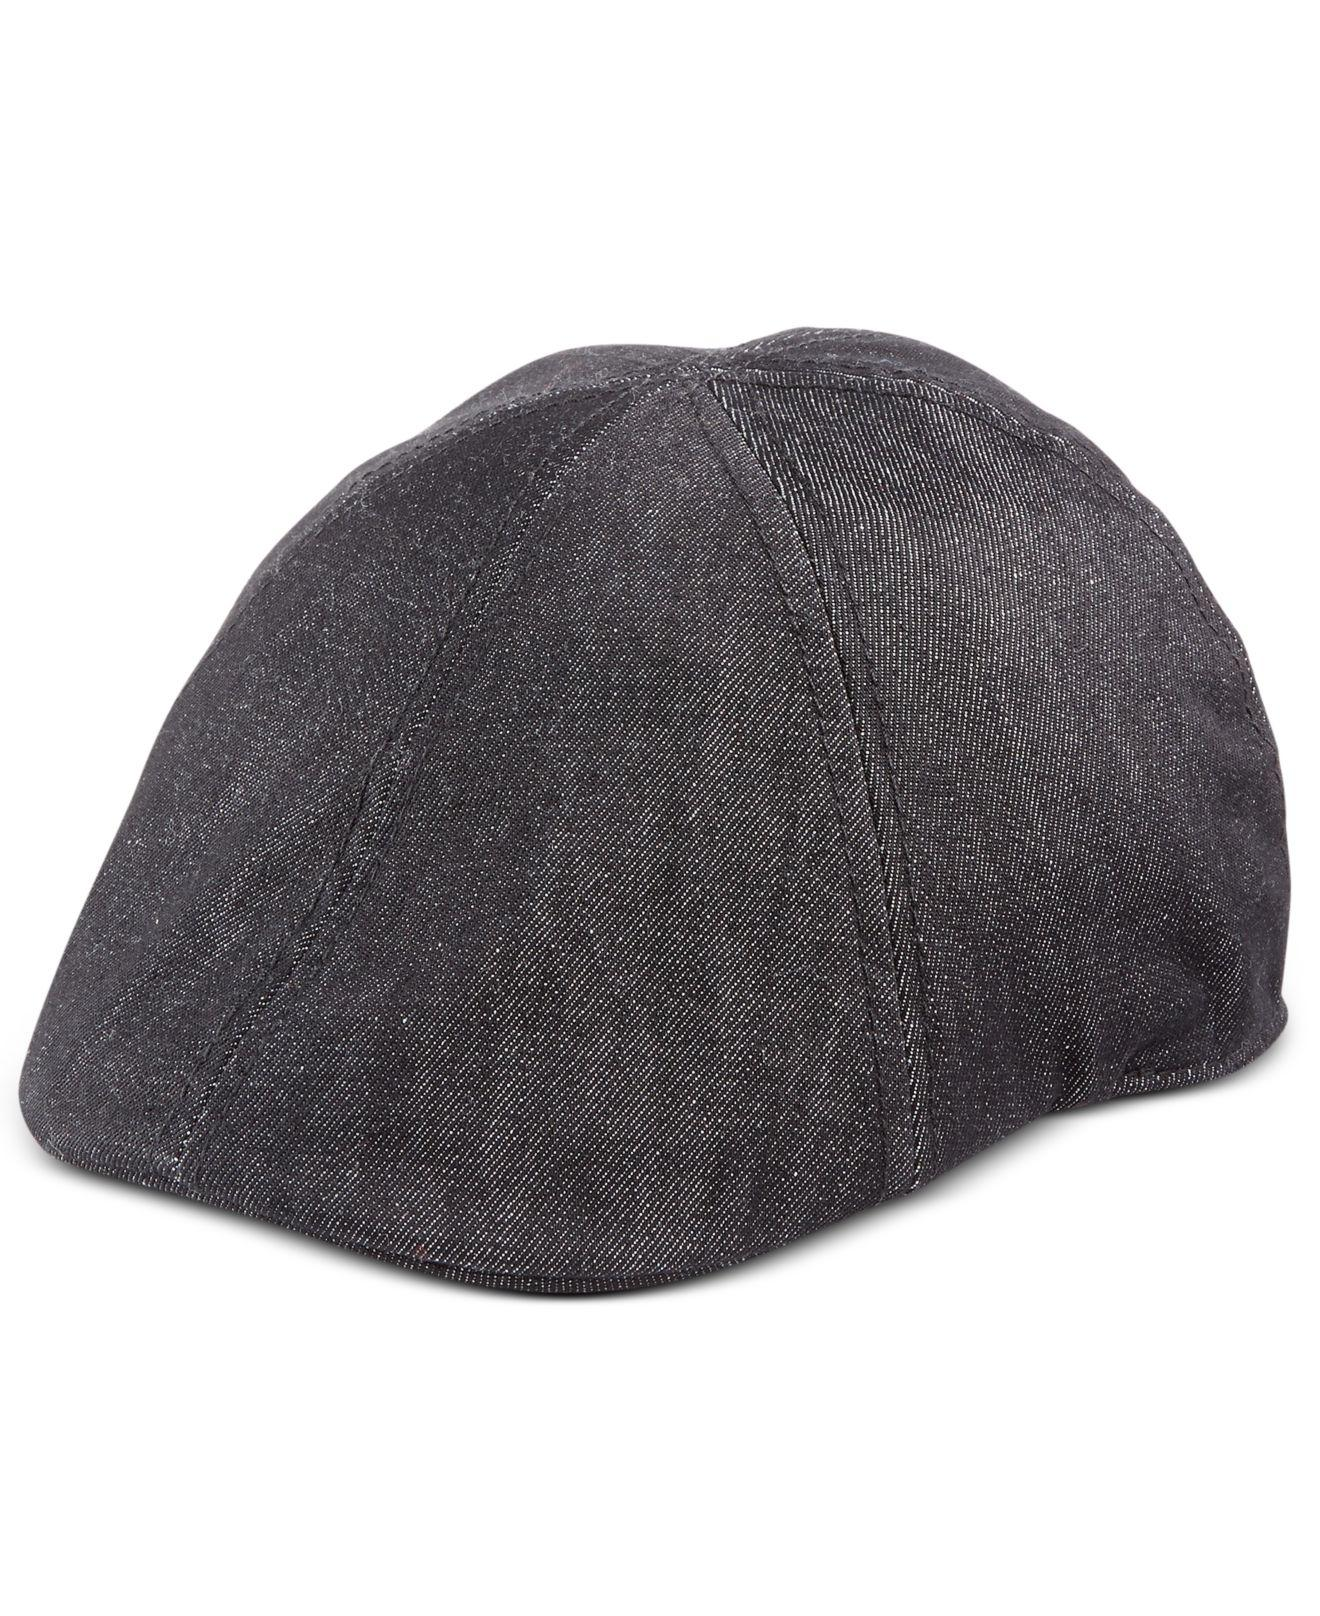 063dcc97b40db Lyst - Levi s Men s Denim Dome Ivy Hat in Gray for Men